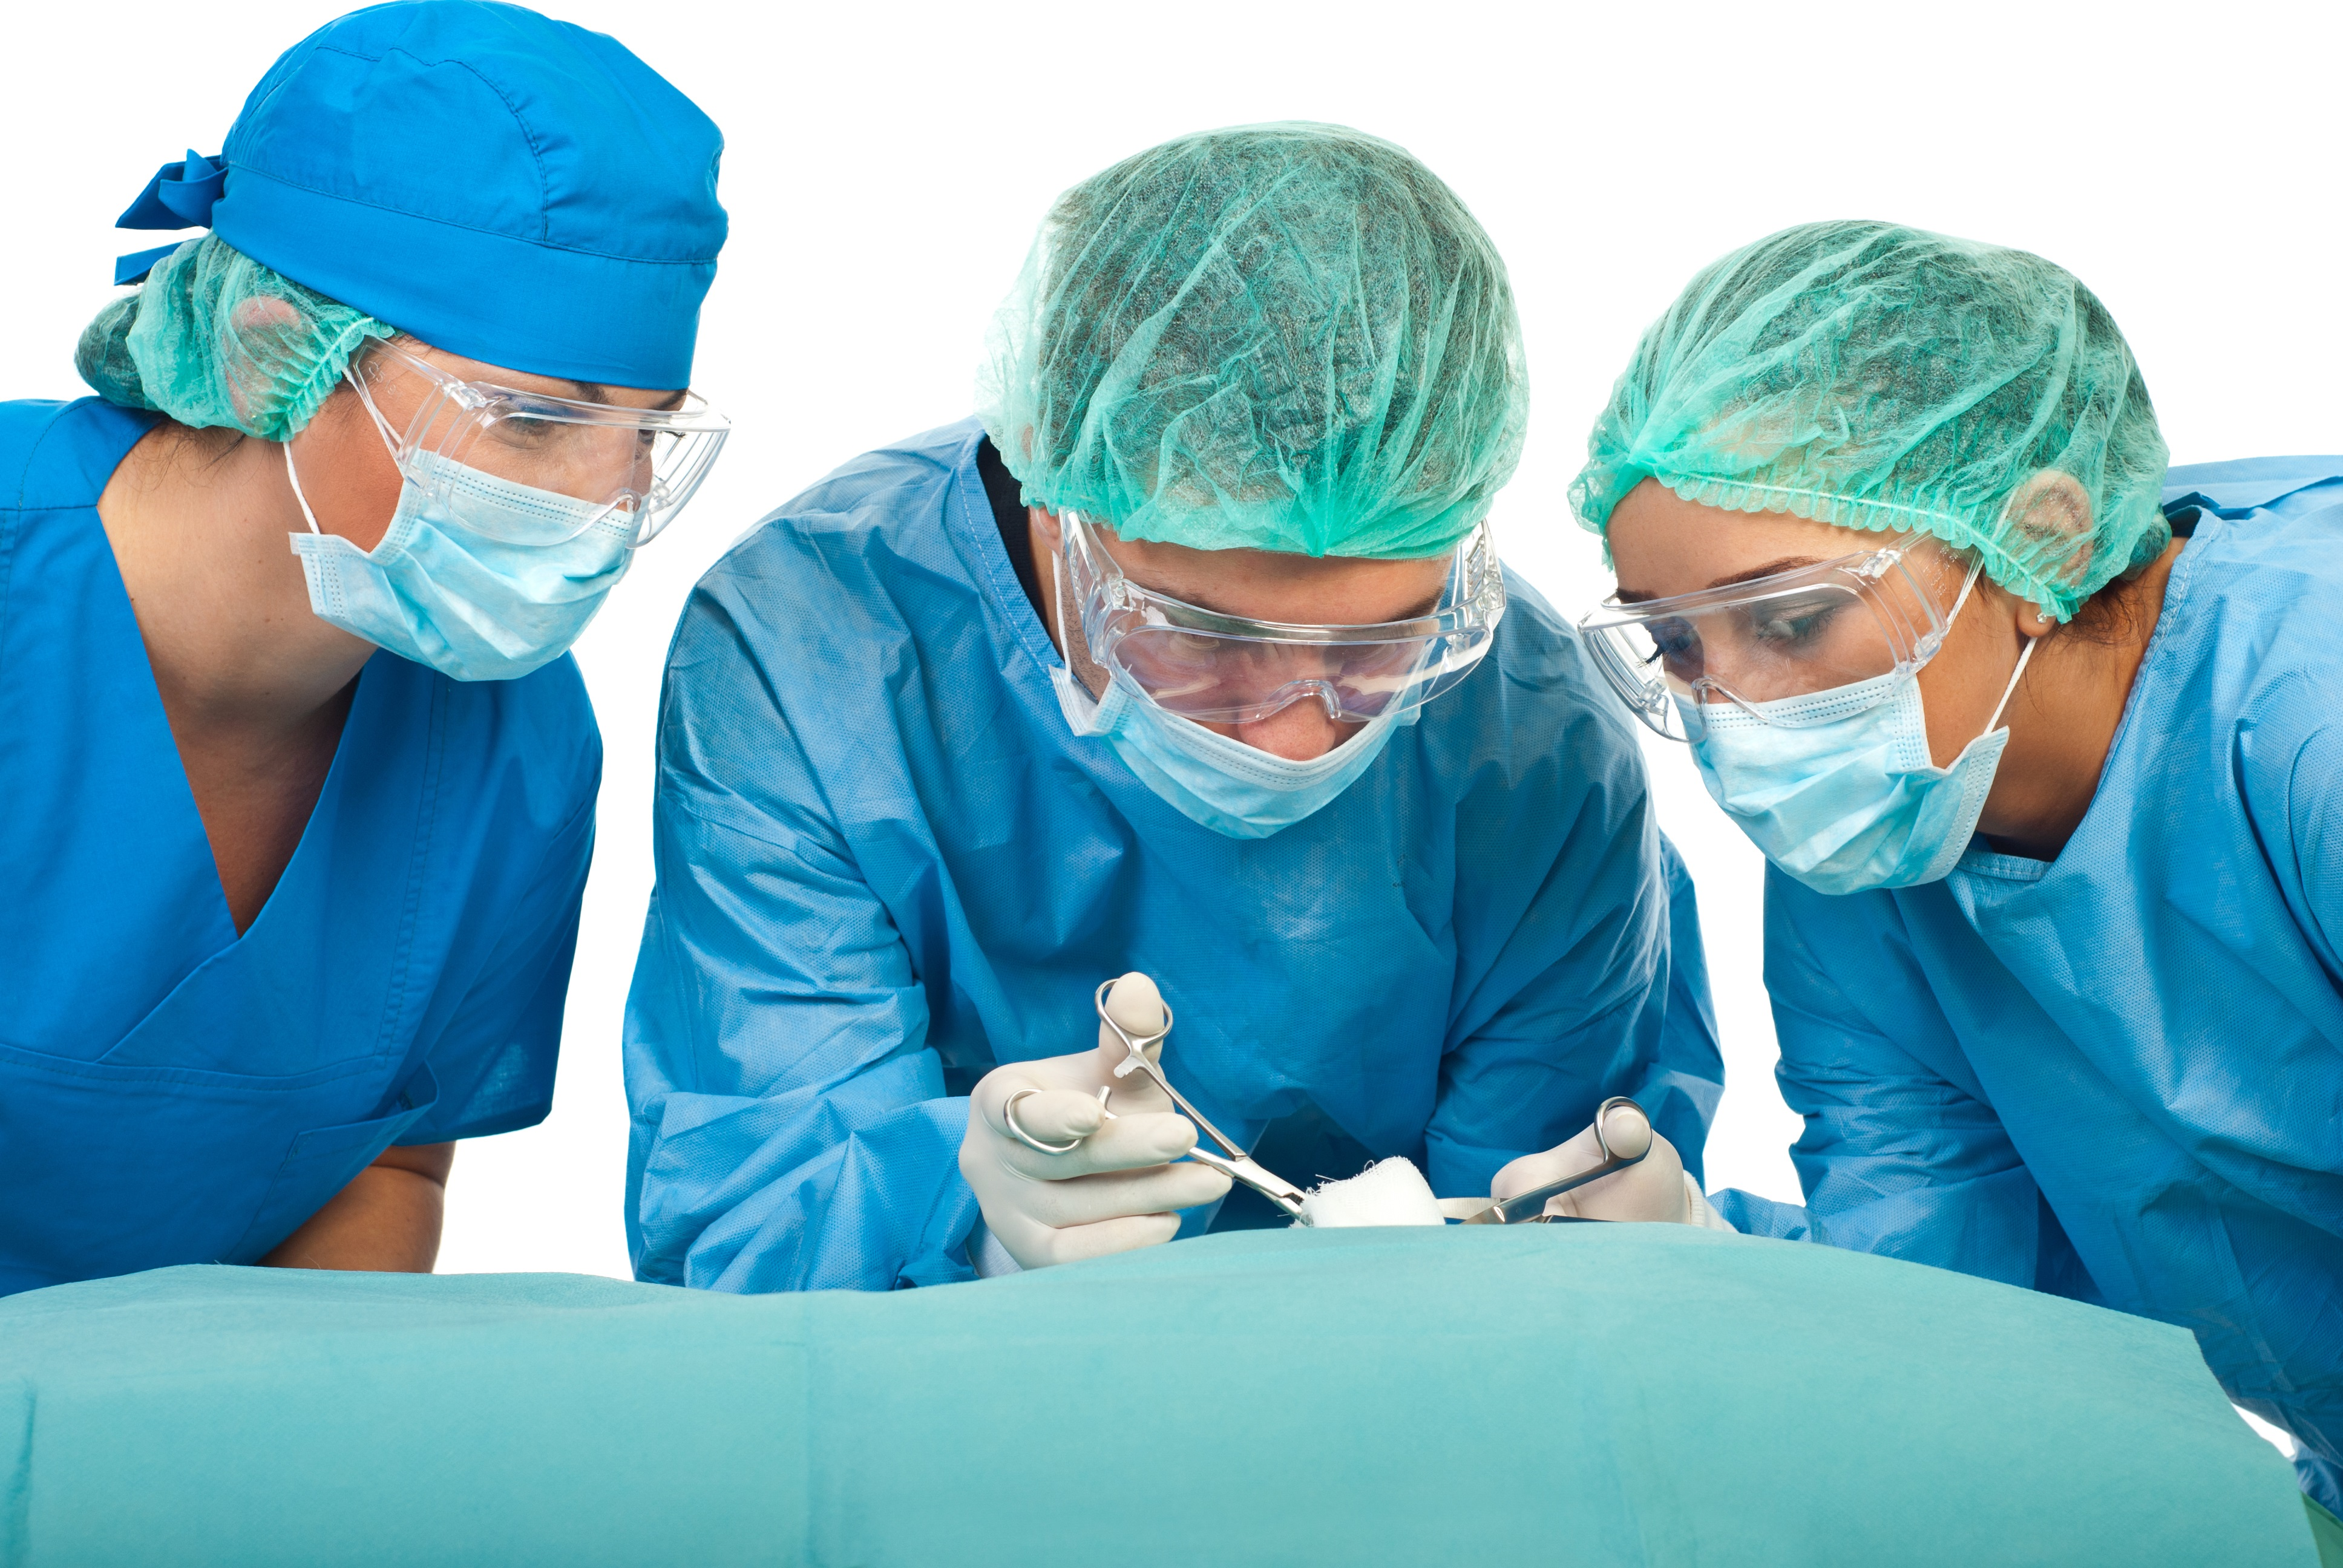 three surgeons doing a surgery wearing blue gowns and head